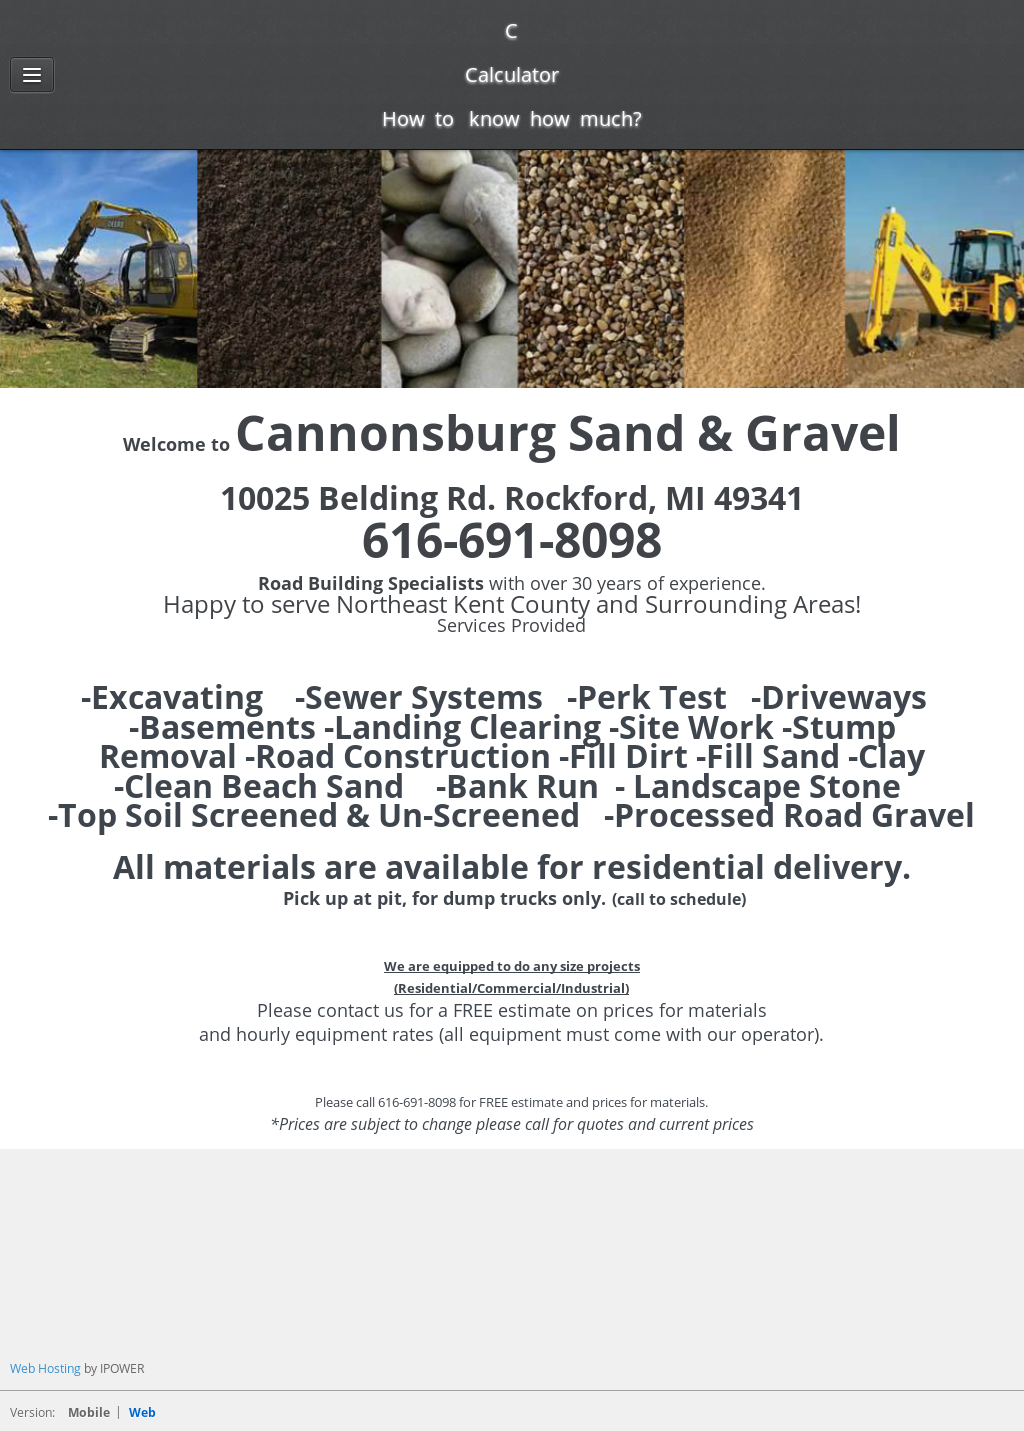 Cannonsburg Sand & Gravel Competitors, Revenue and Employees